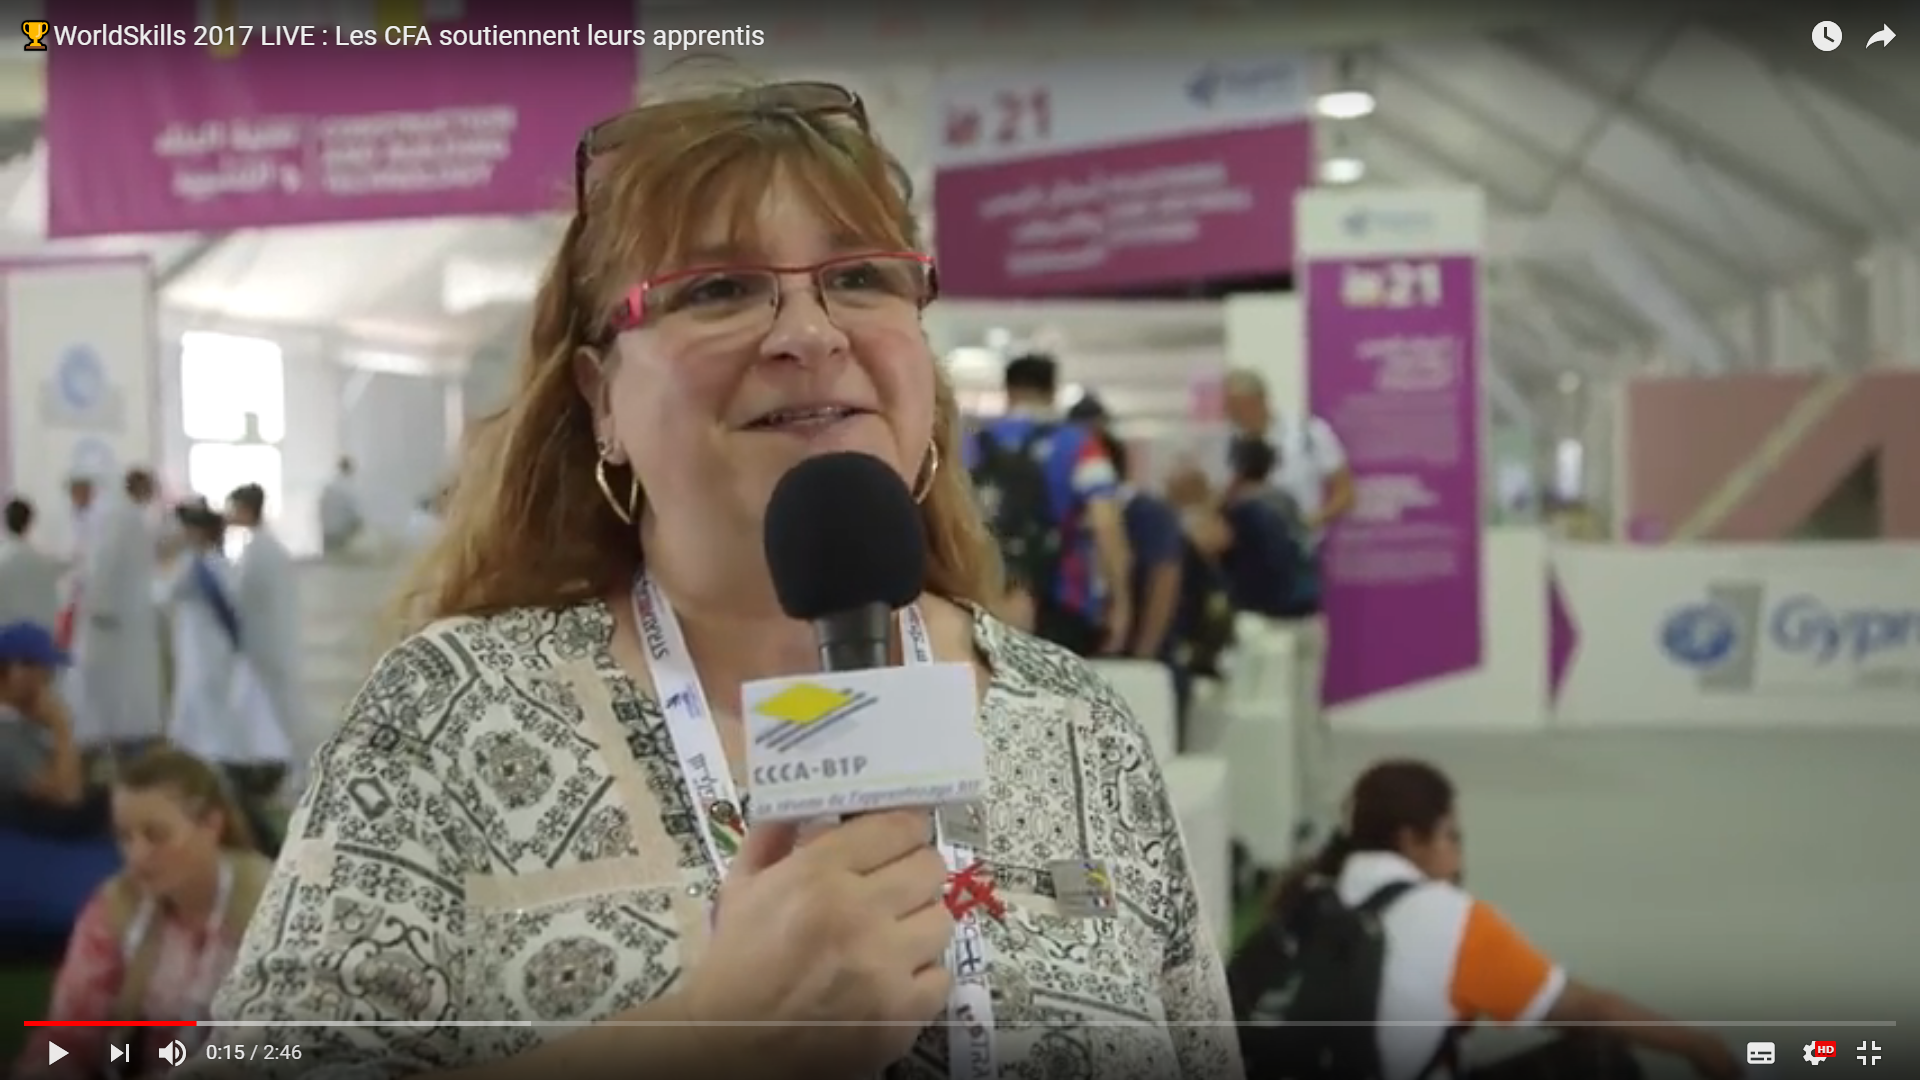 Interview du CFA BTP Centre Val-de-Loire aux WorldSkills 2017